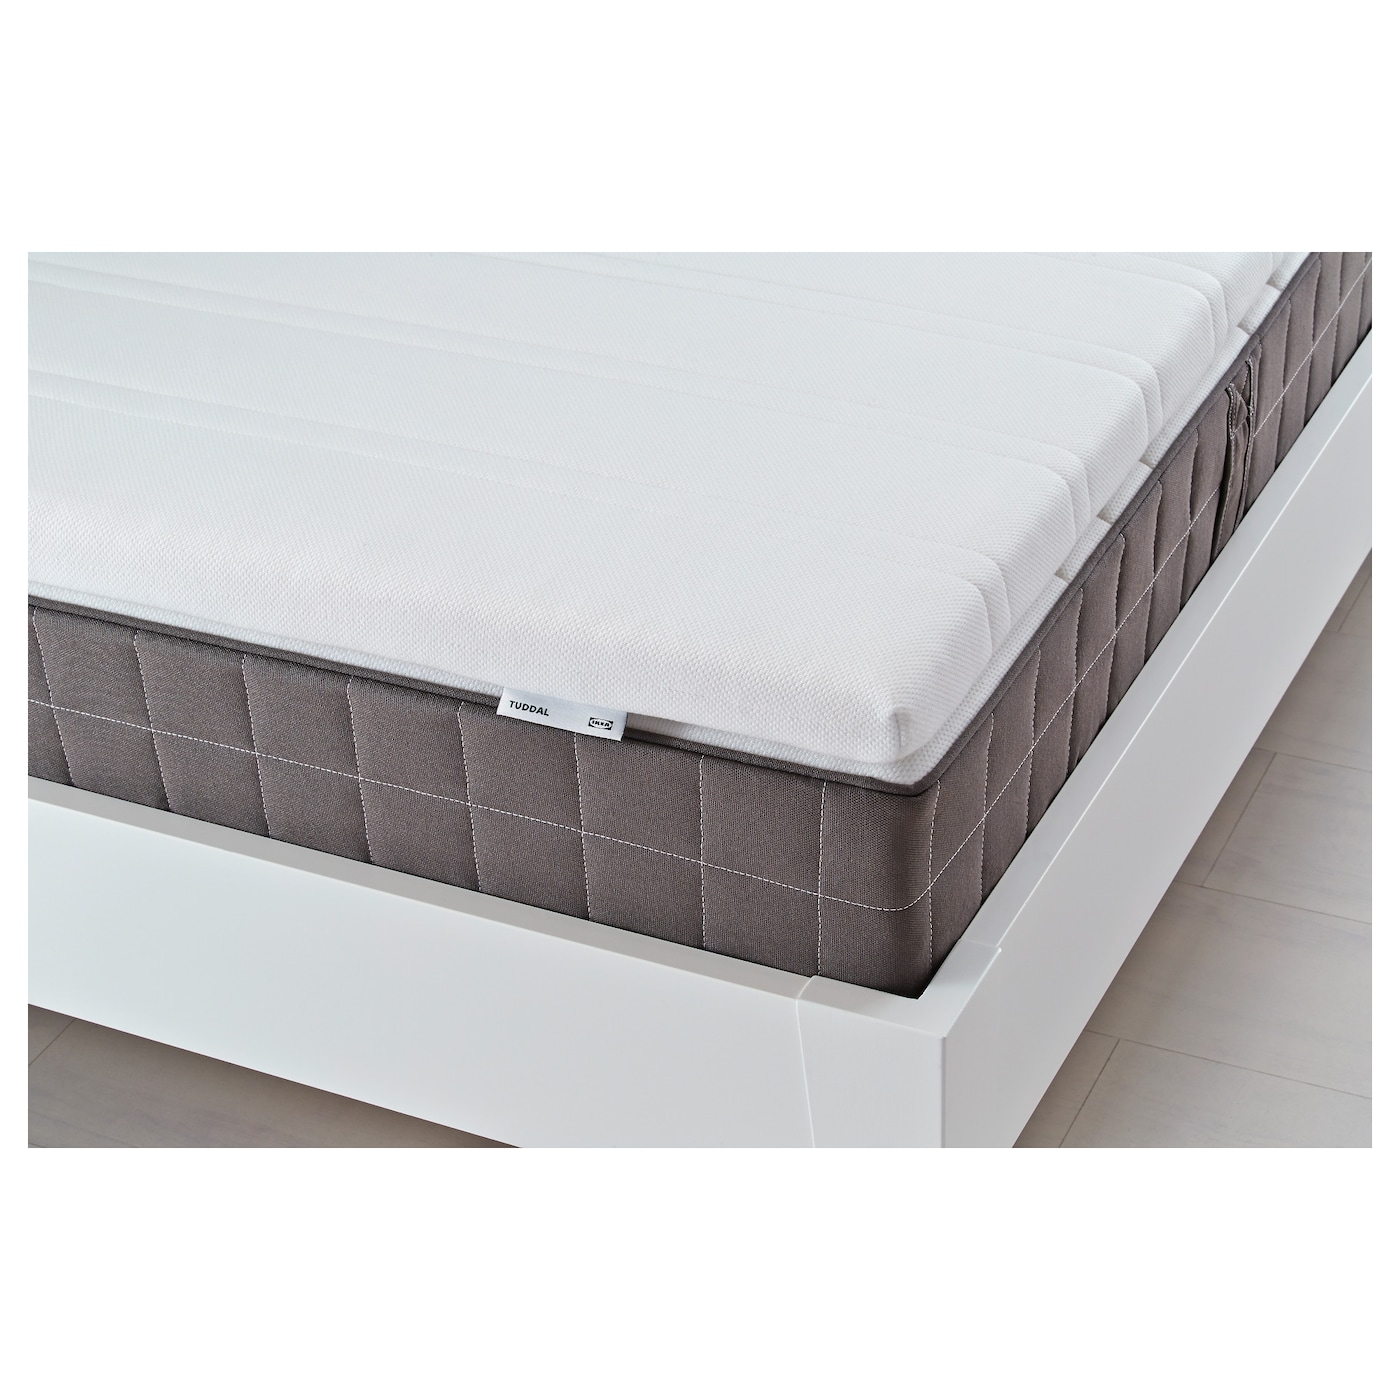 tuddal surmatelas blanc 140x200 cm ikea. Black Bedroom Furniture Sets. Home Design Ideas